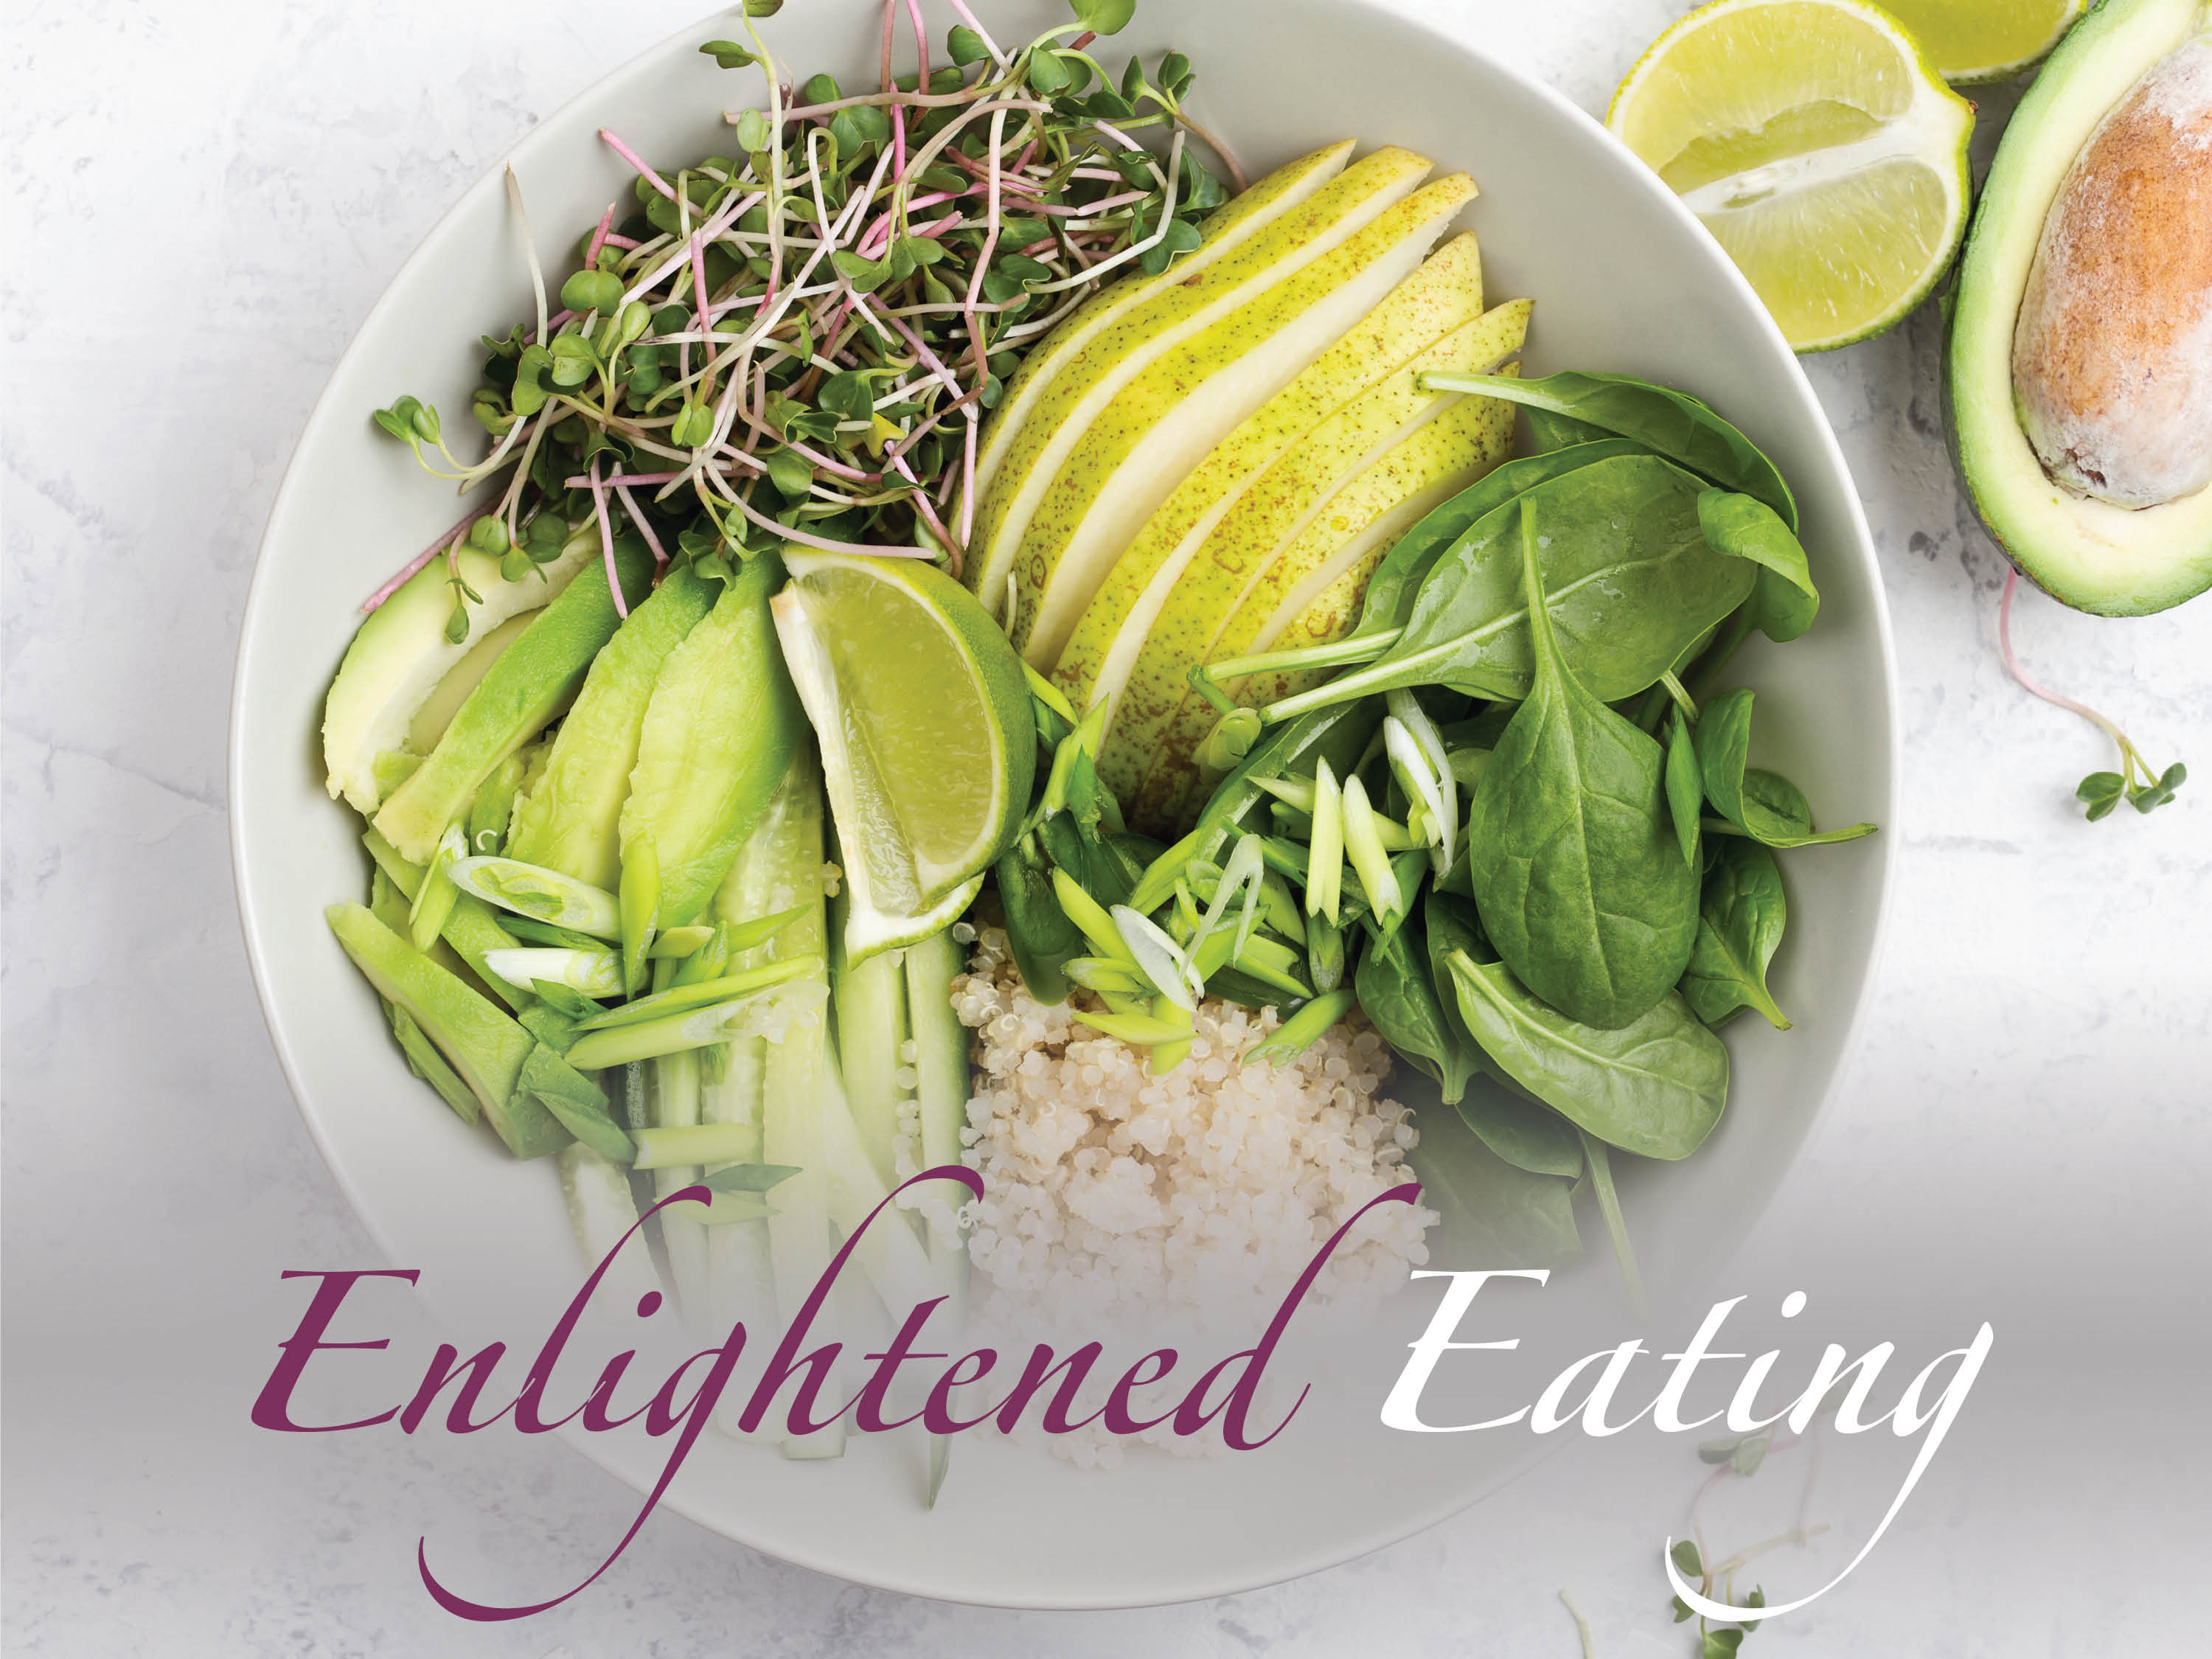 enlightened_eating-Trends2020-lowres